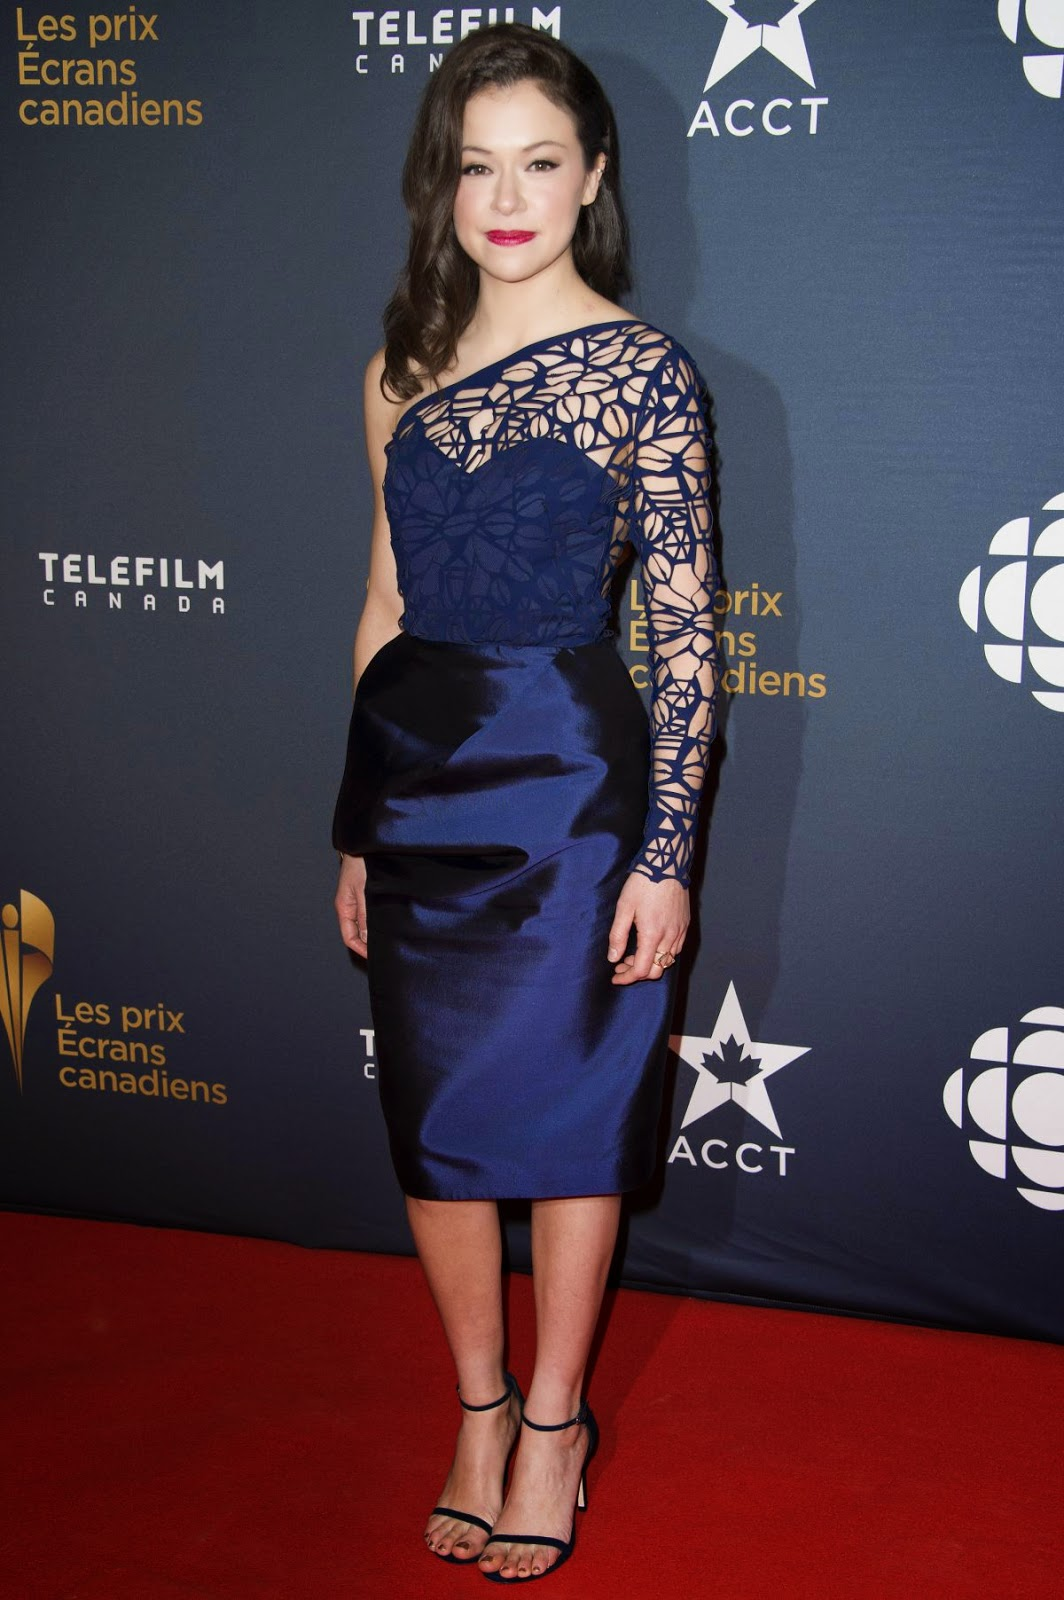 Actress @ Tatiana Maslany At Canadian Screen Awards 2015 In Toronto